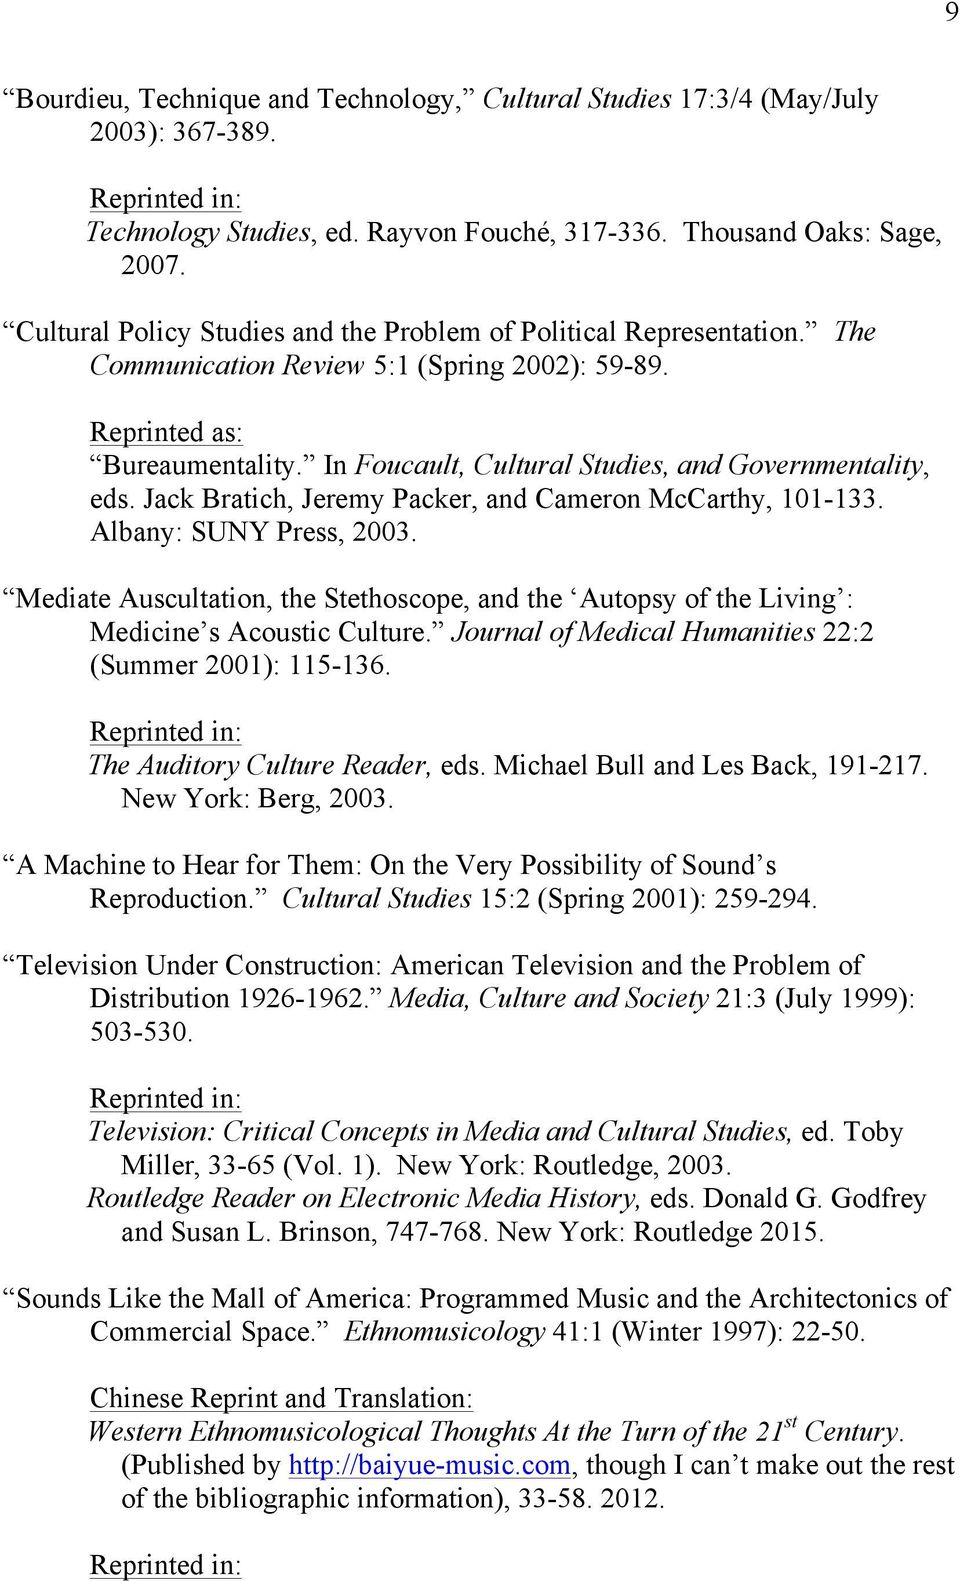 In Foucault, Cultural Studies, and Governmentality, eds. Jack Bratich, Jeremy Packer, and Cameron McCarthy, 101-133. Albany: SUNY Press, 2003.